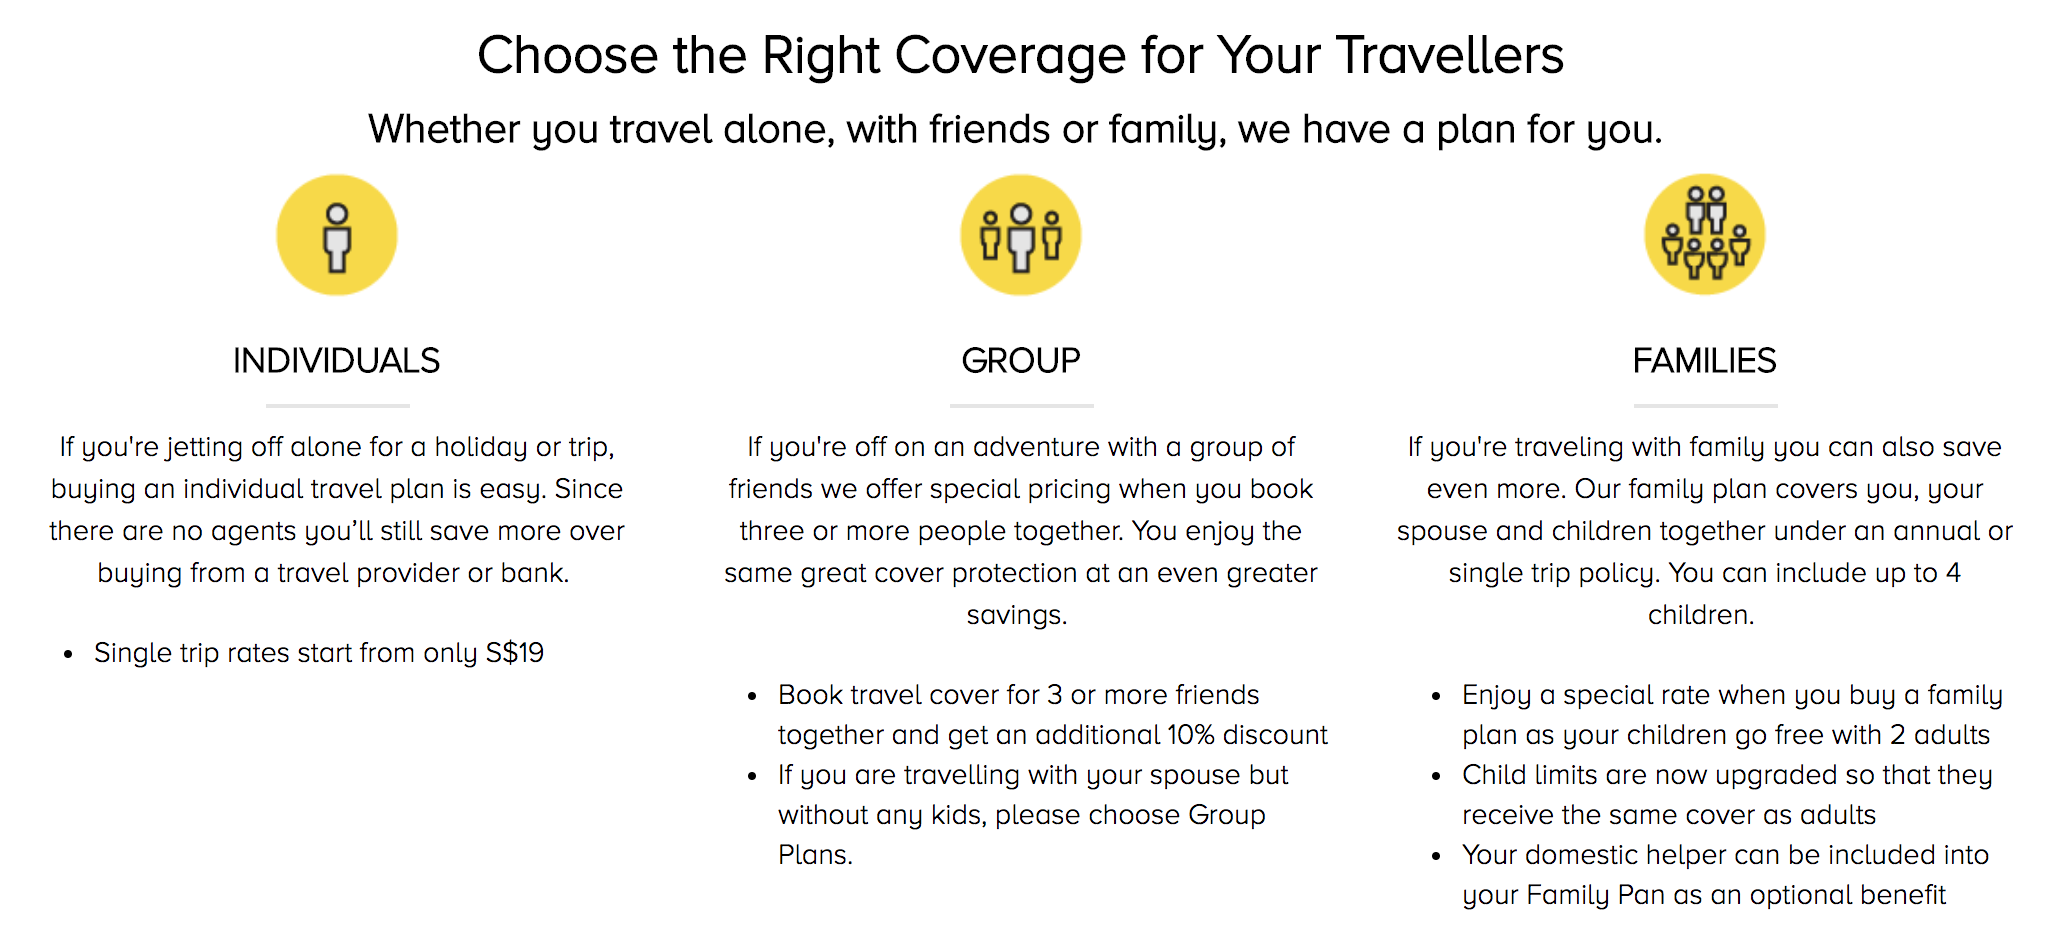 DirectAsia Travel Insurance Packages